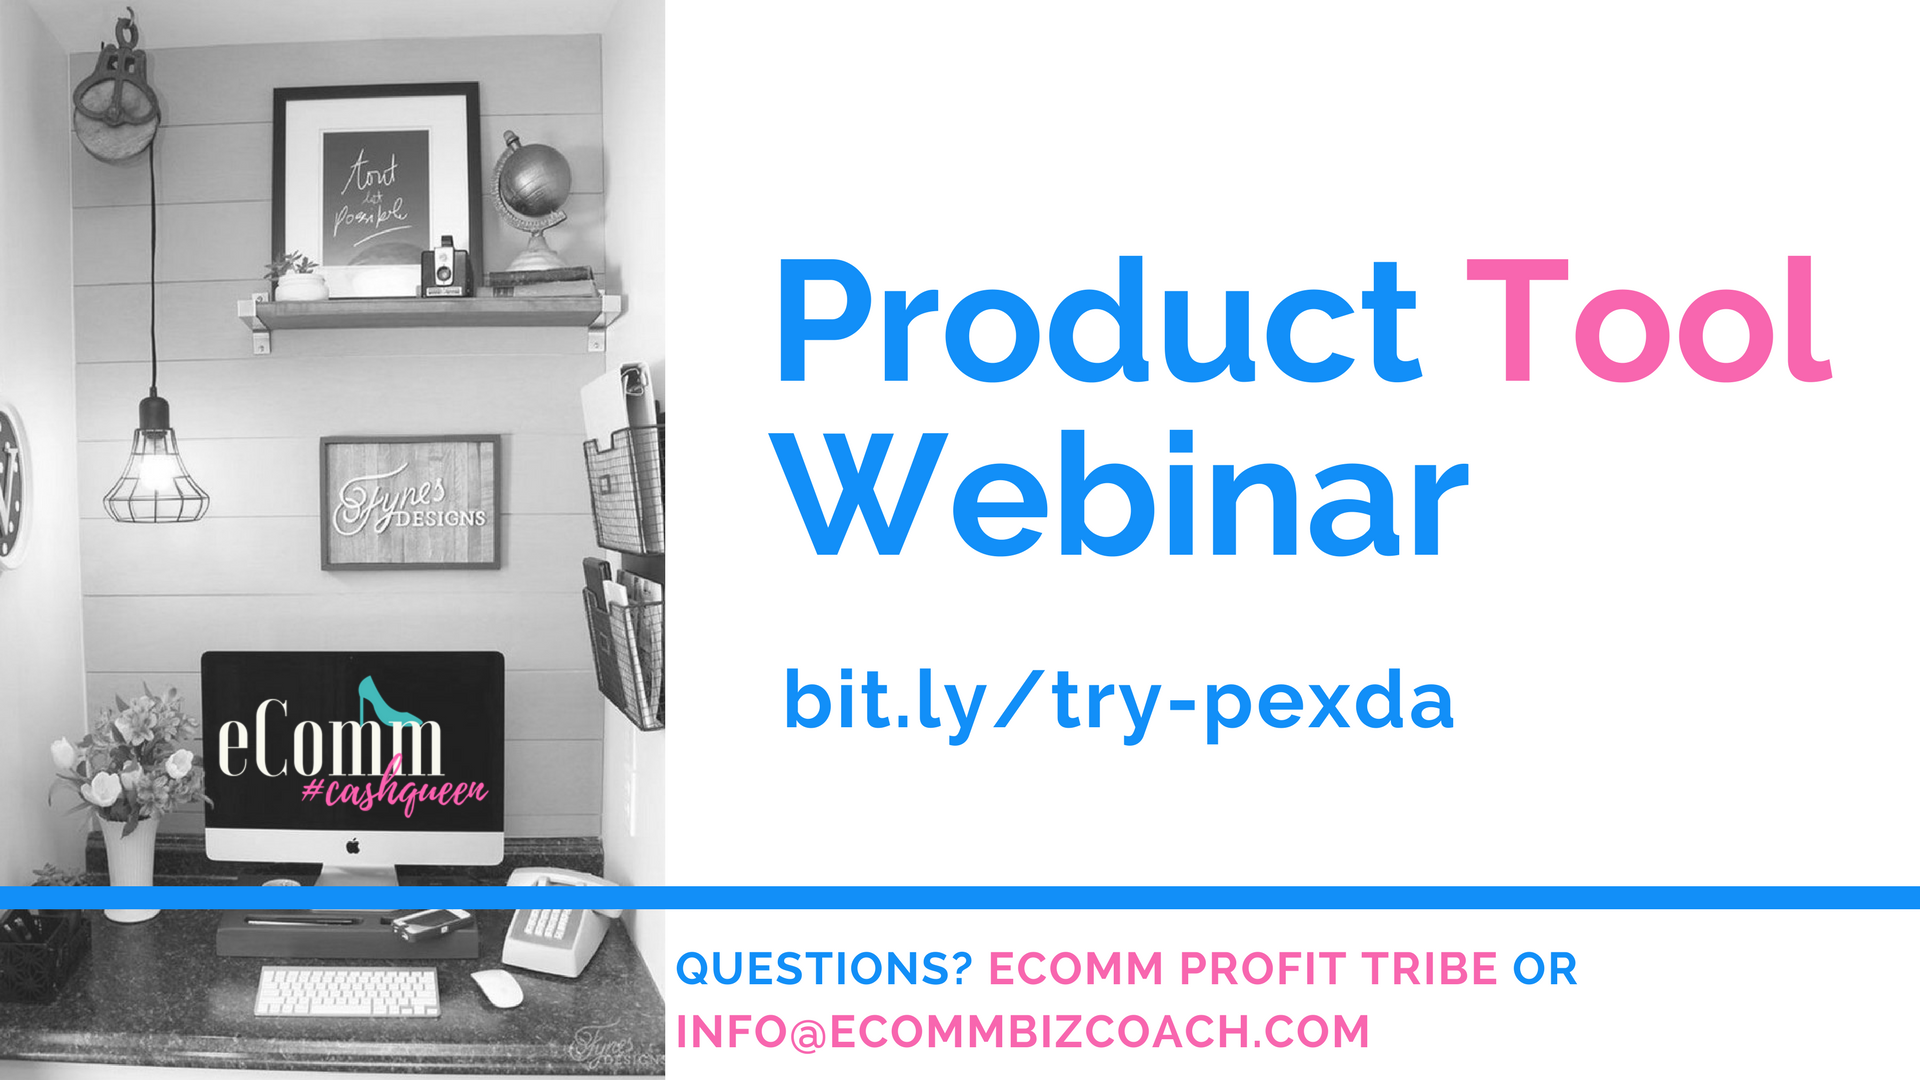 Product Tool Webinar - All About Pexda